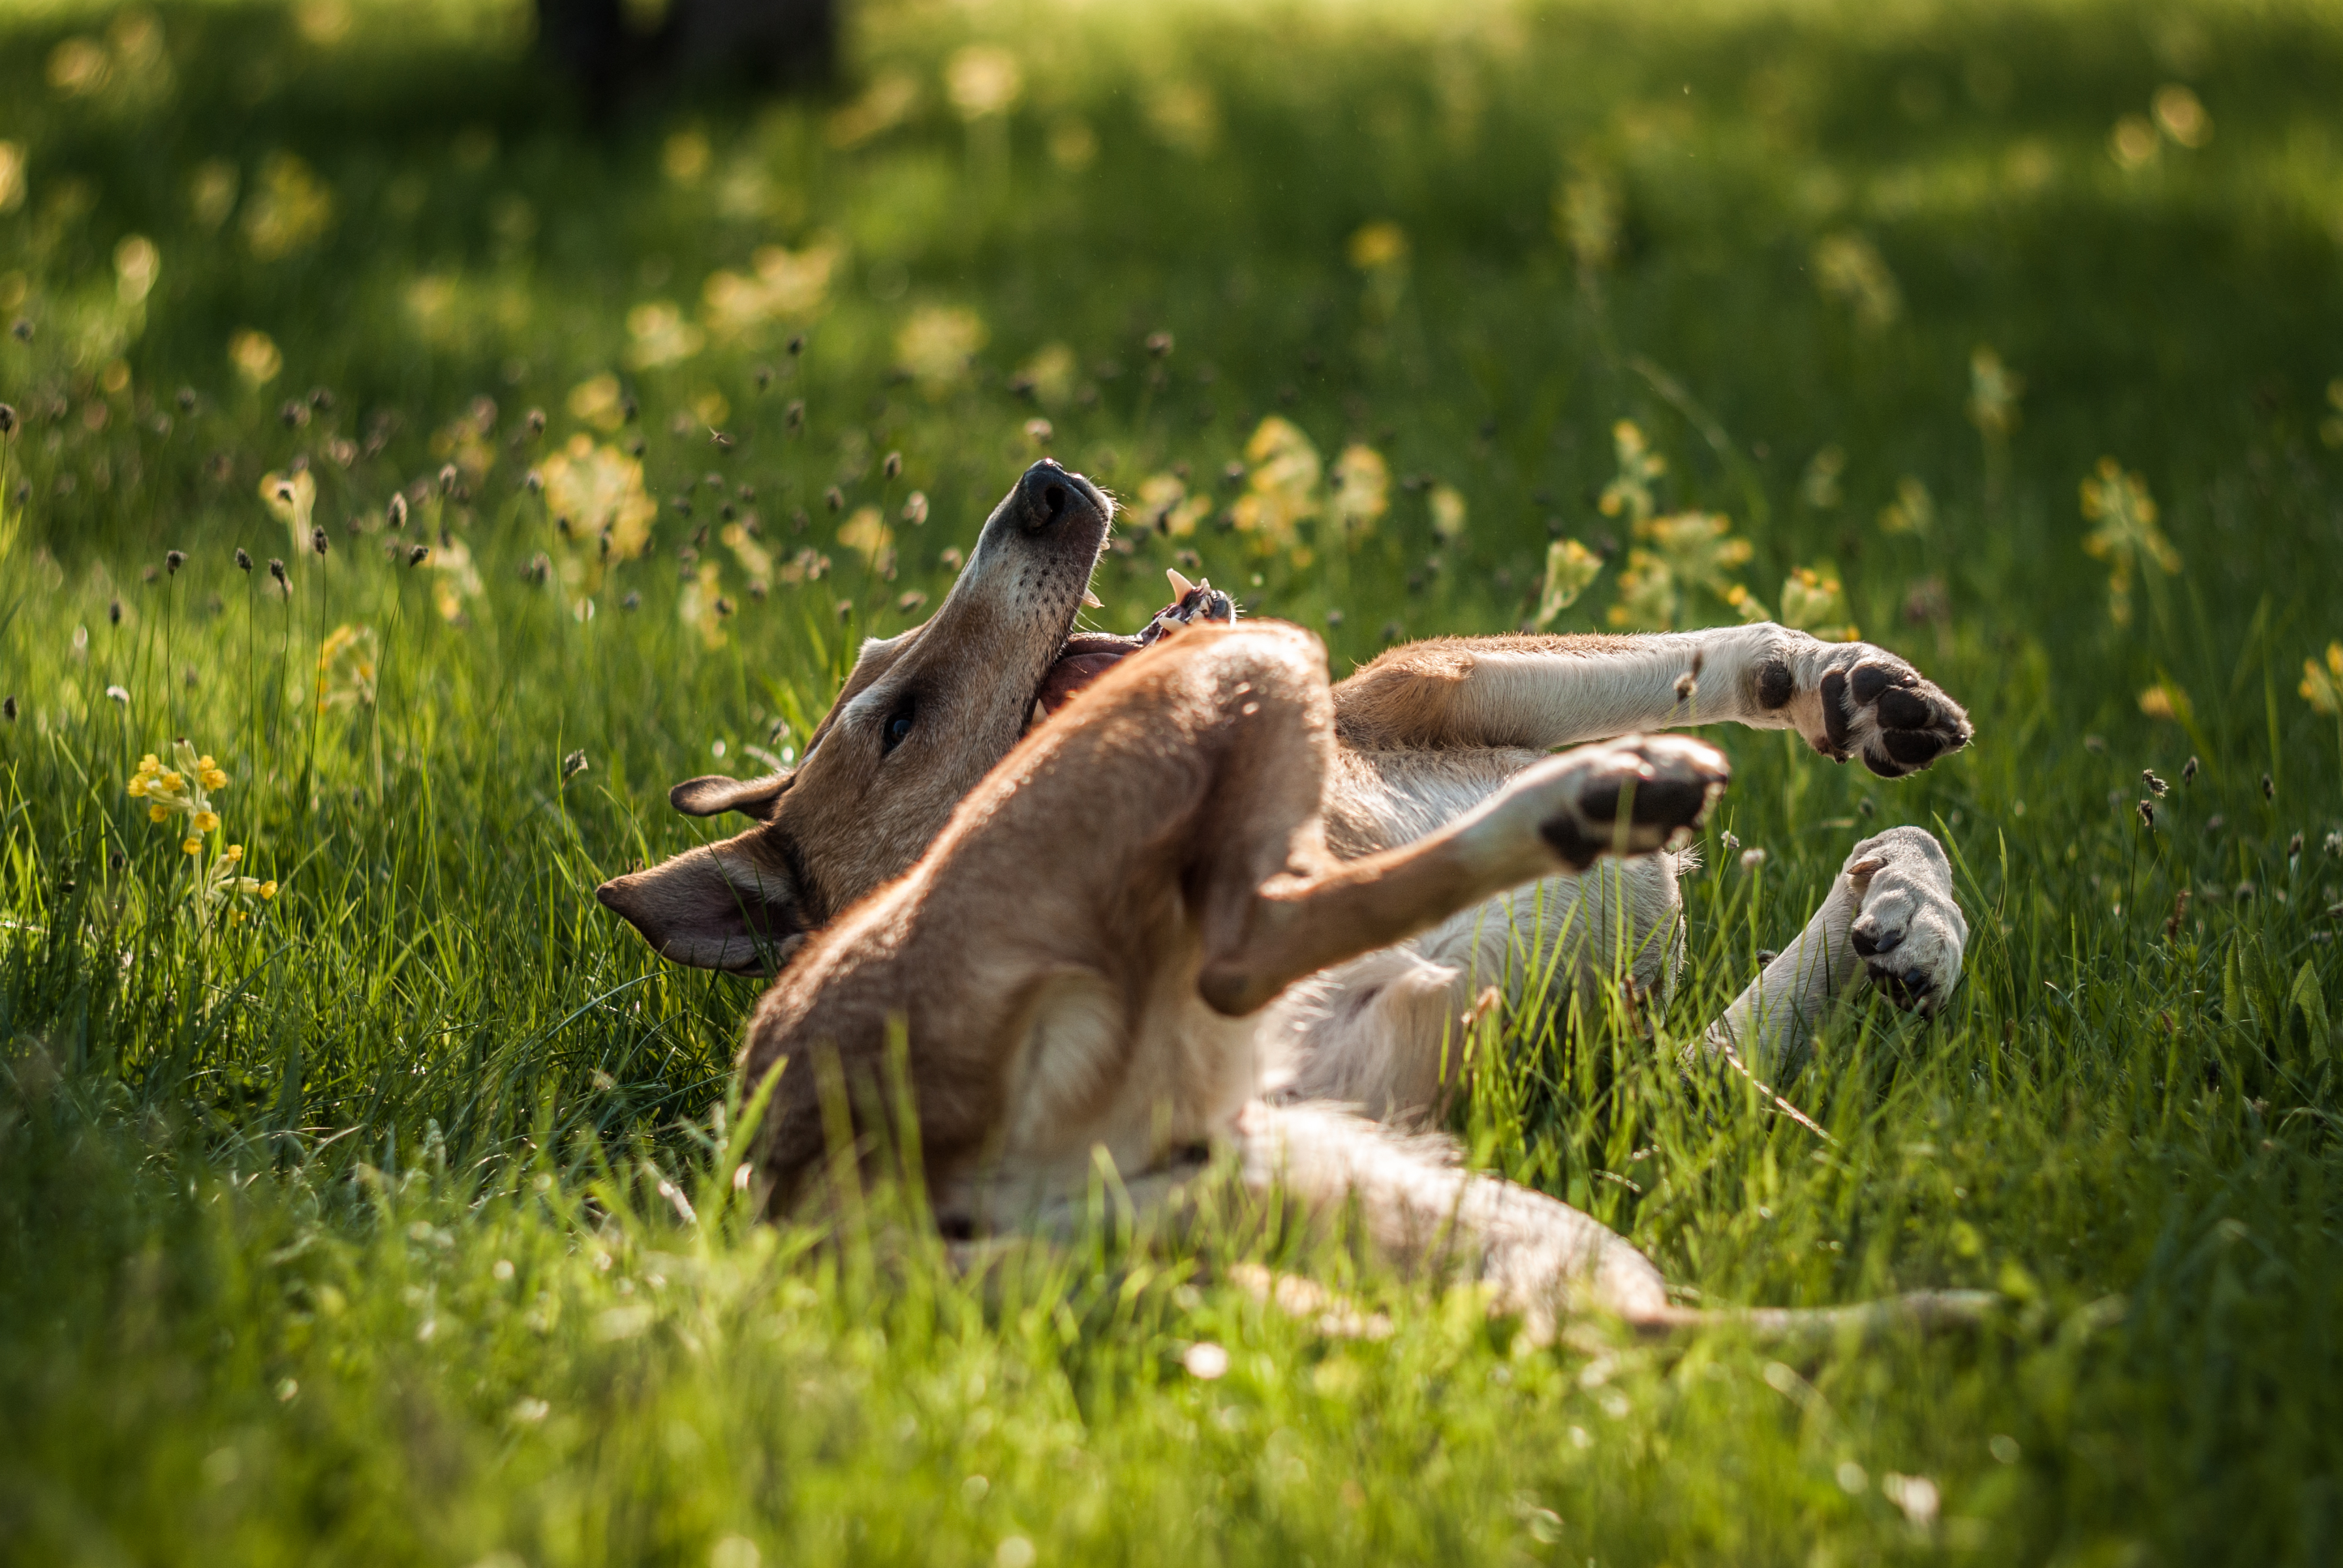 Smooth Collie rolling on the grass.